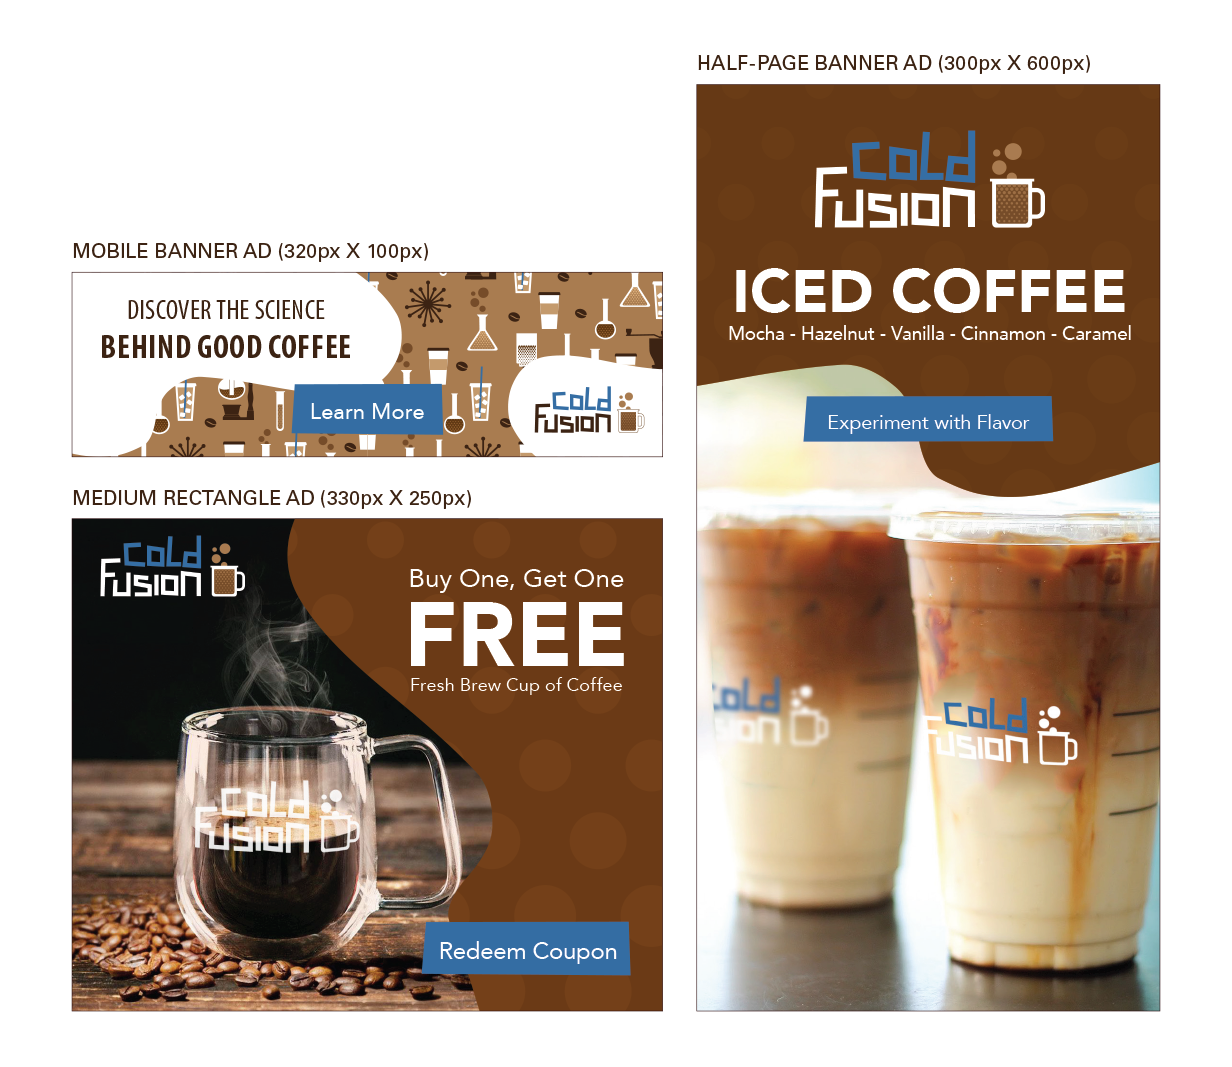 coldfusion-ads